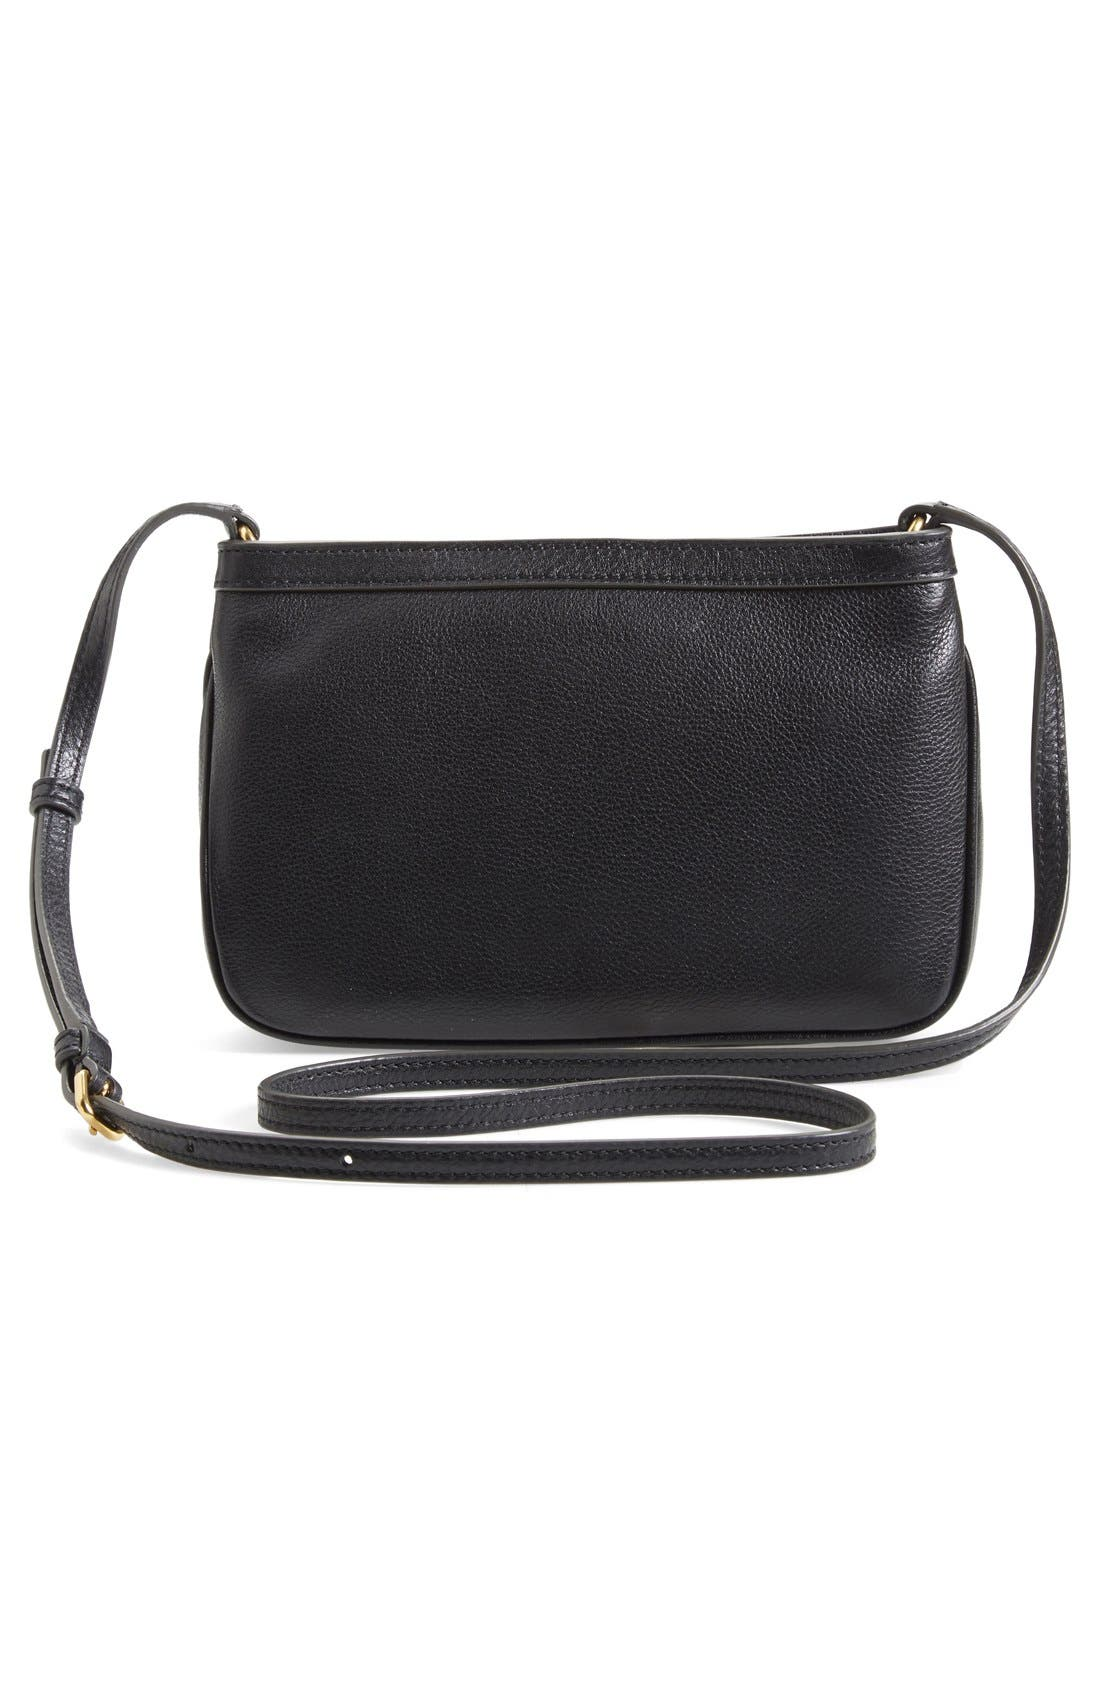 MARC BY MARC JACOBS 'Take Your Marc - Percy' Crossbody Bag,                             Alternate thumbnail 5, color,